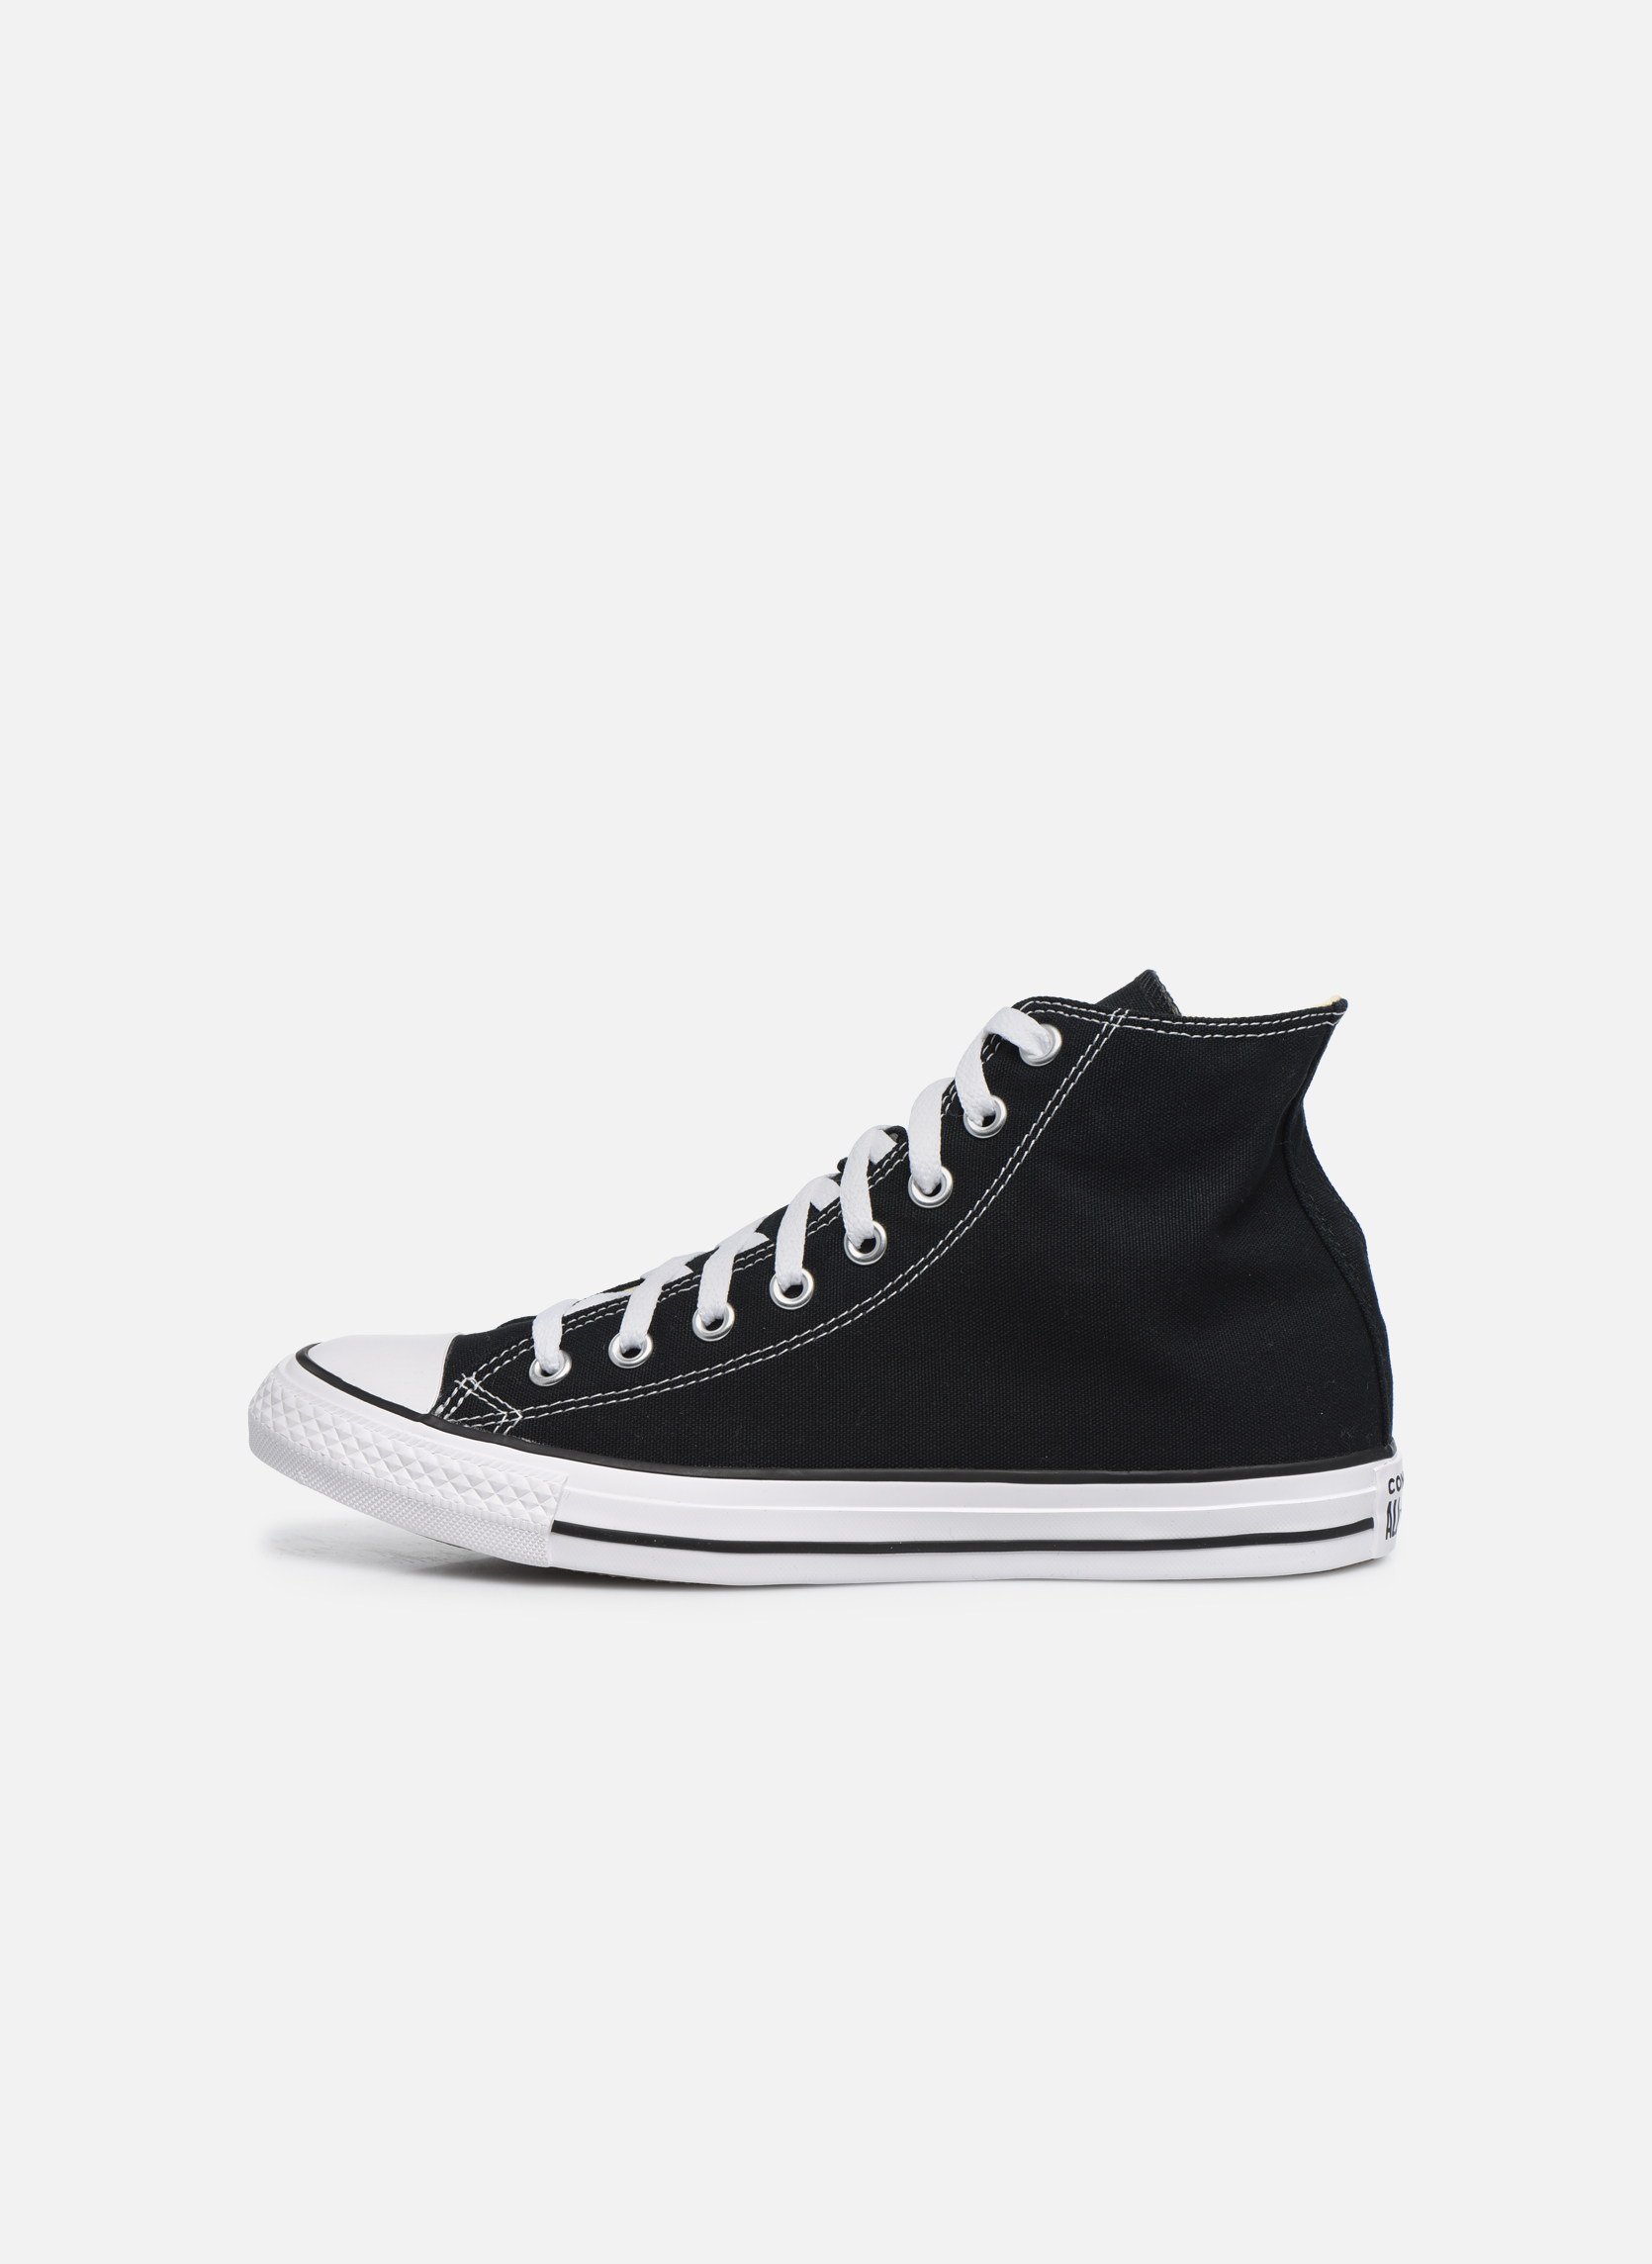 Converse Basse Blanche Pas Cher Taille 37